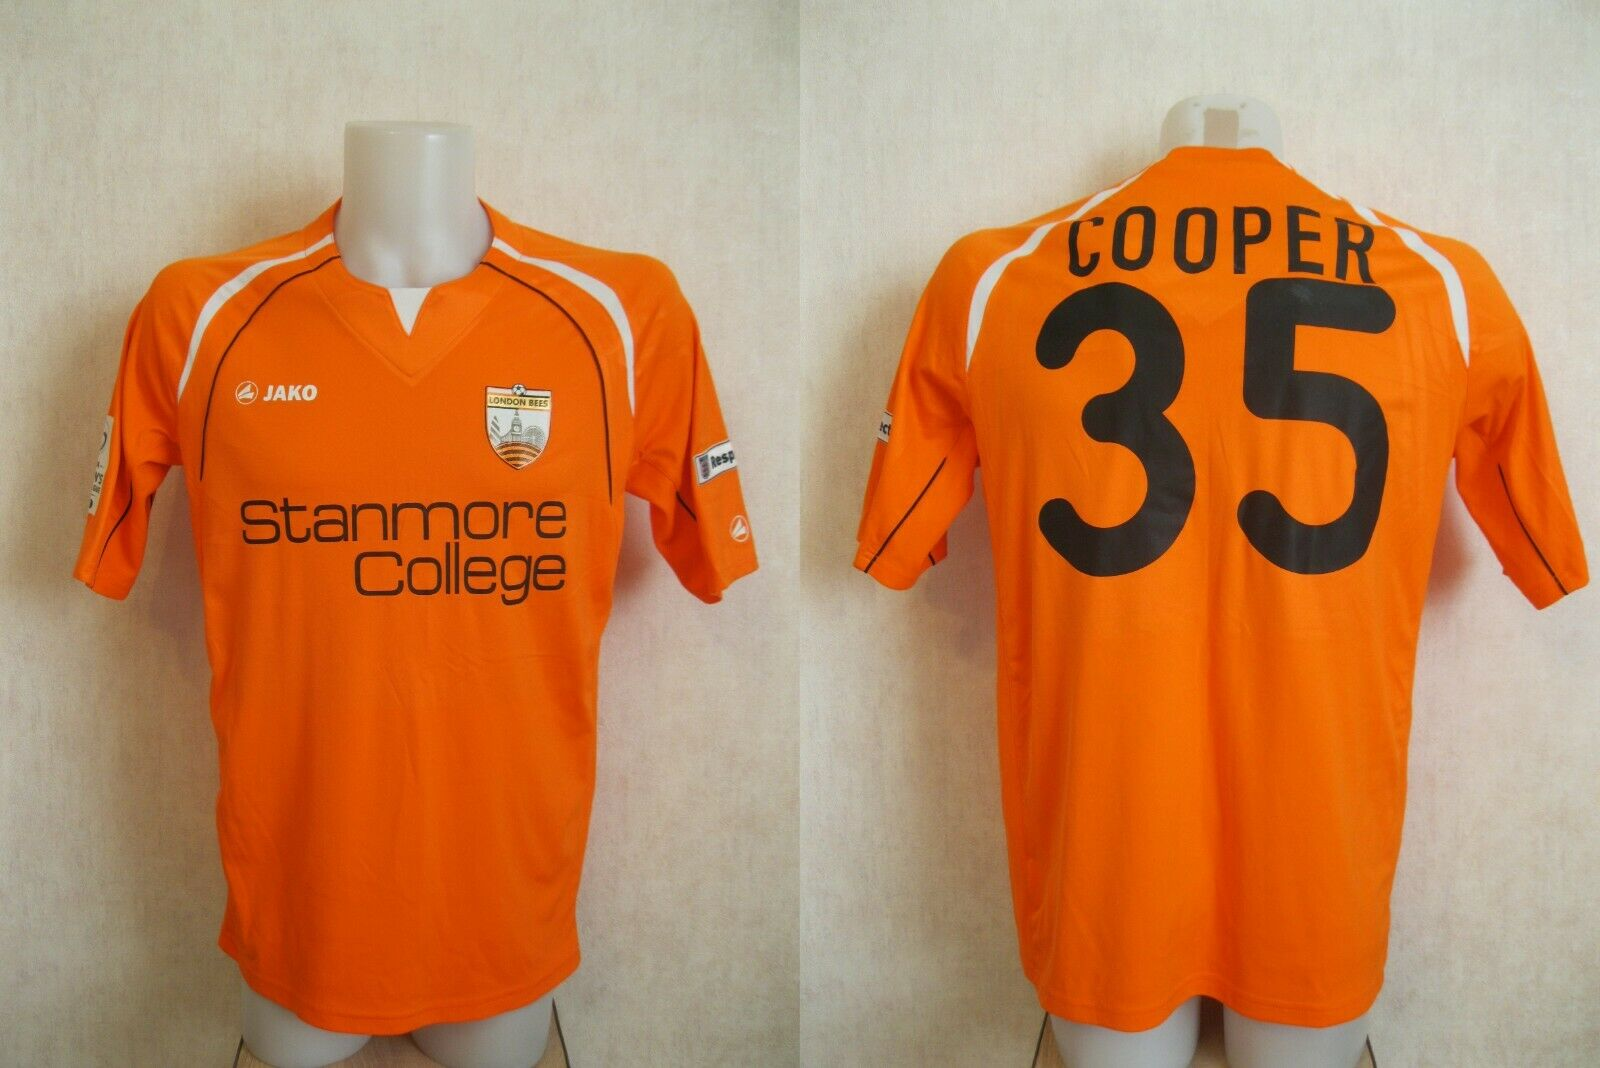 London Bees #35 Cooper 2014 home Size M Jako 4260 jersey